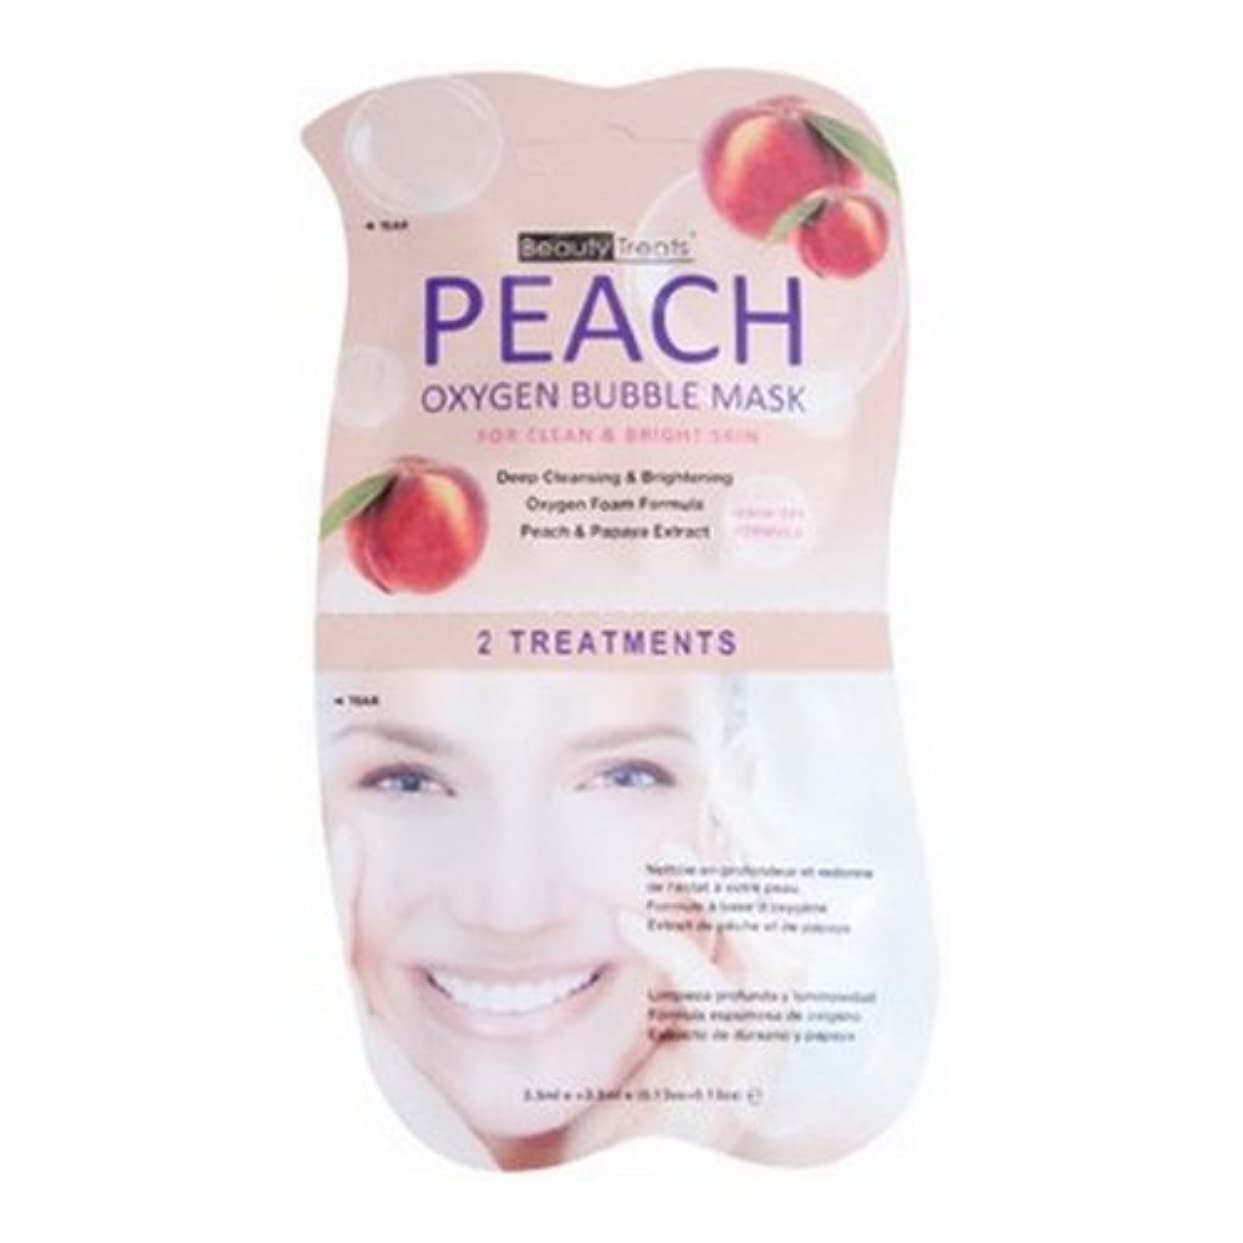 耳キウイ代わりに(3 Pack) BEAUTY TREATS Peach Oxygen Bubble Mask - Peach (並行輸入品)